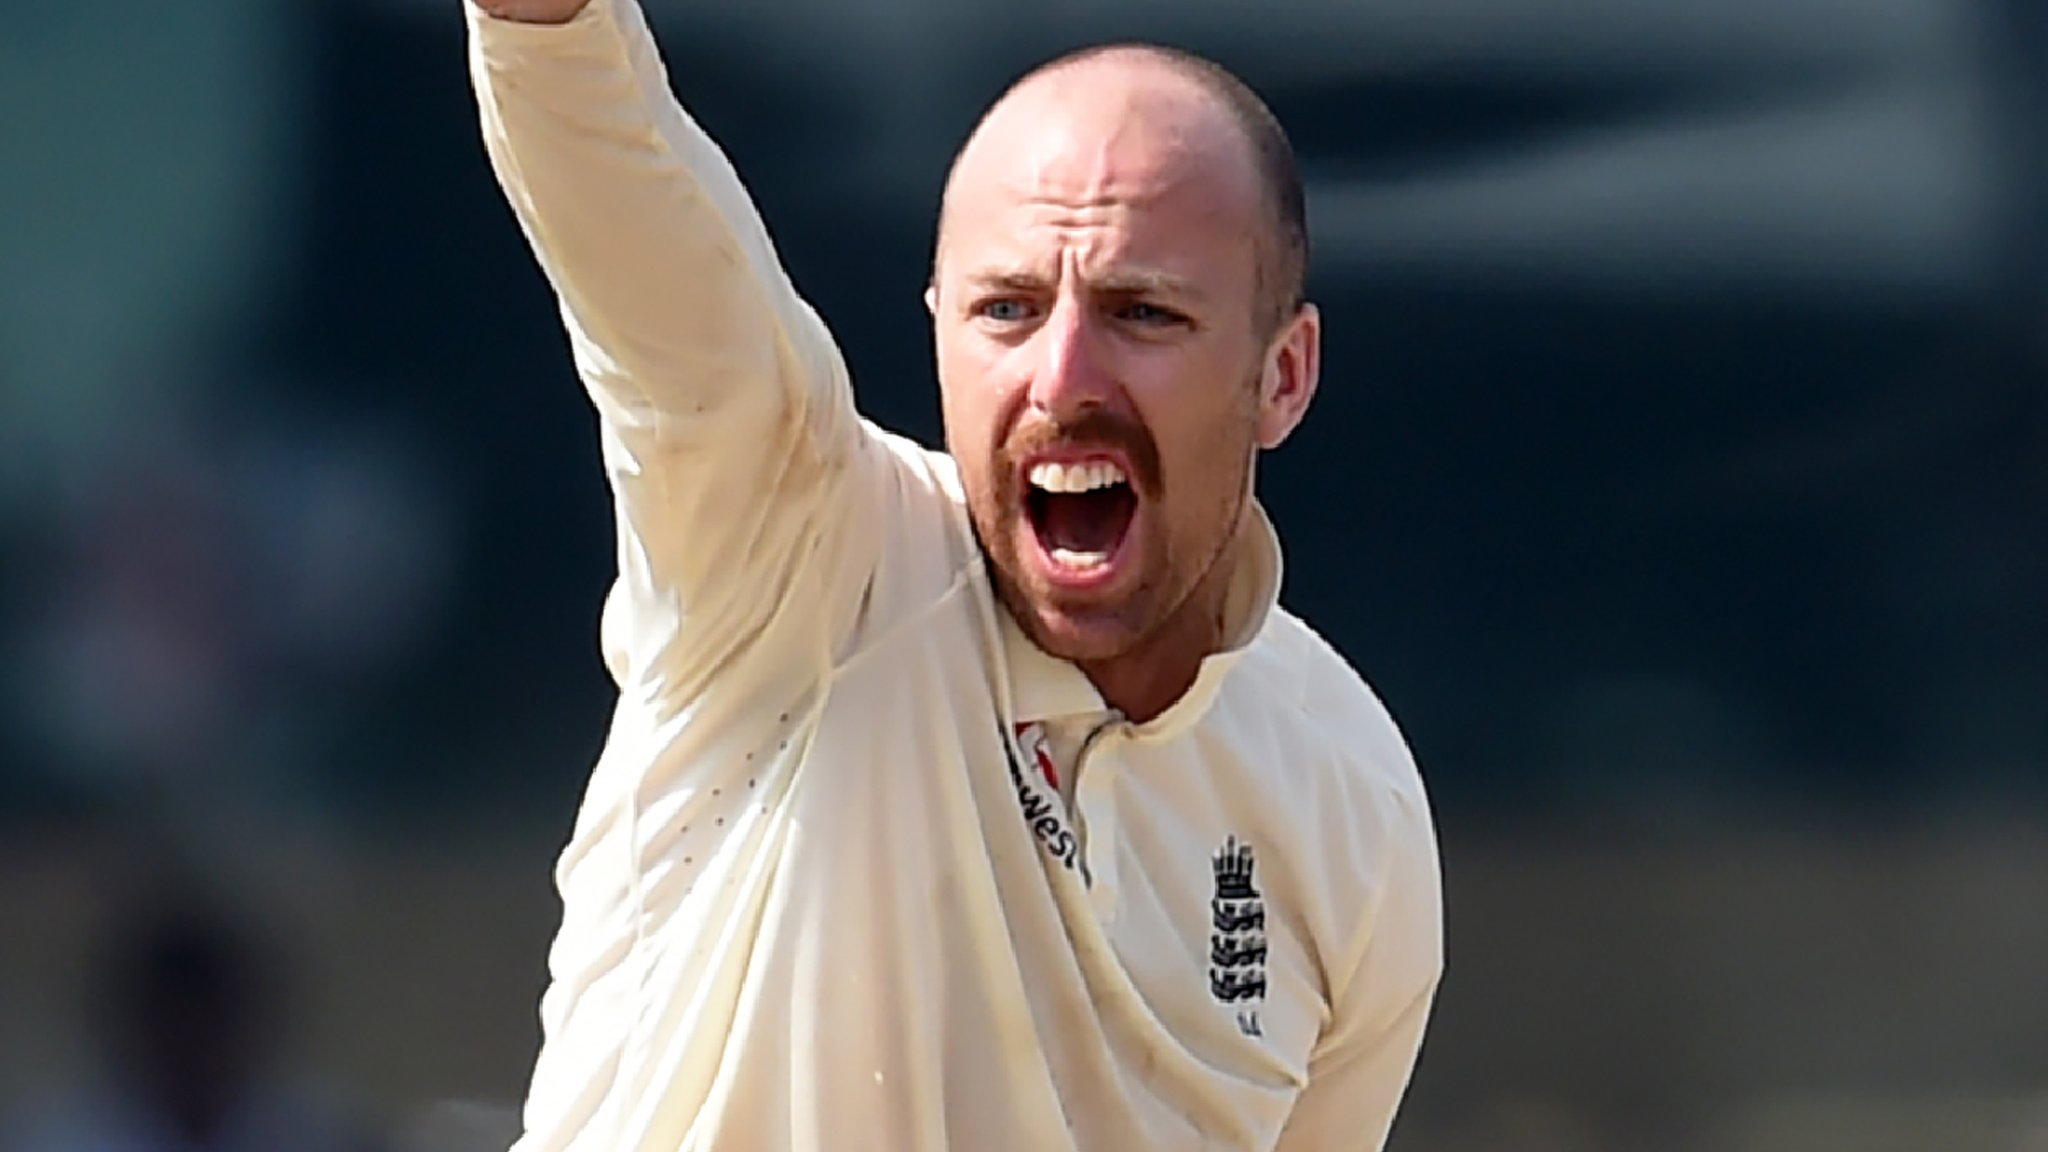 Jack Leach: England spinner signs Somerset contract extension